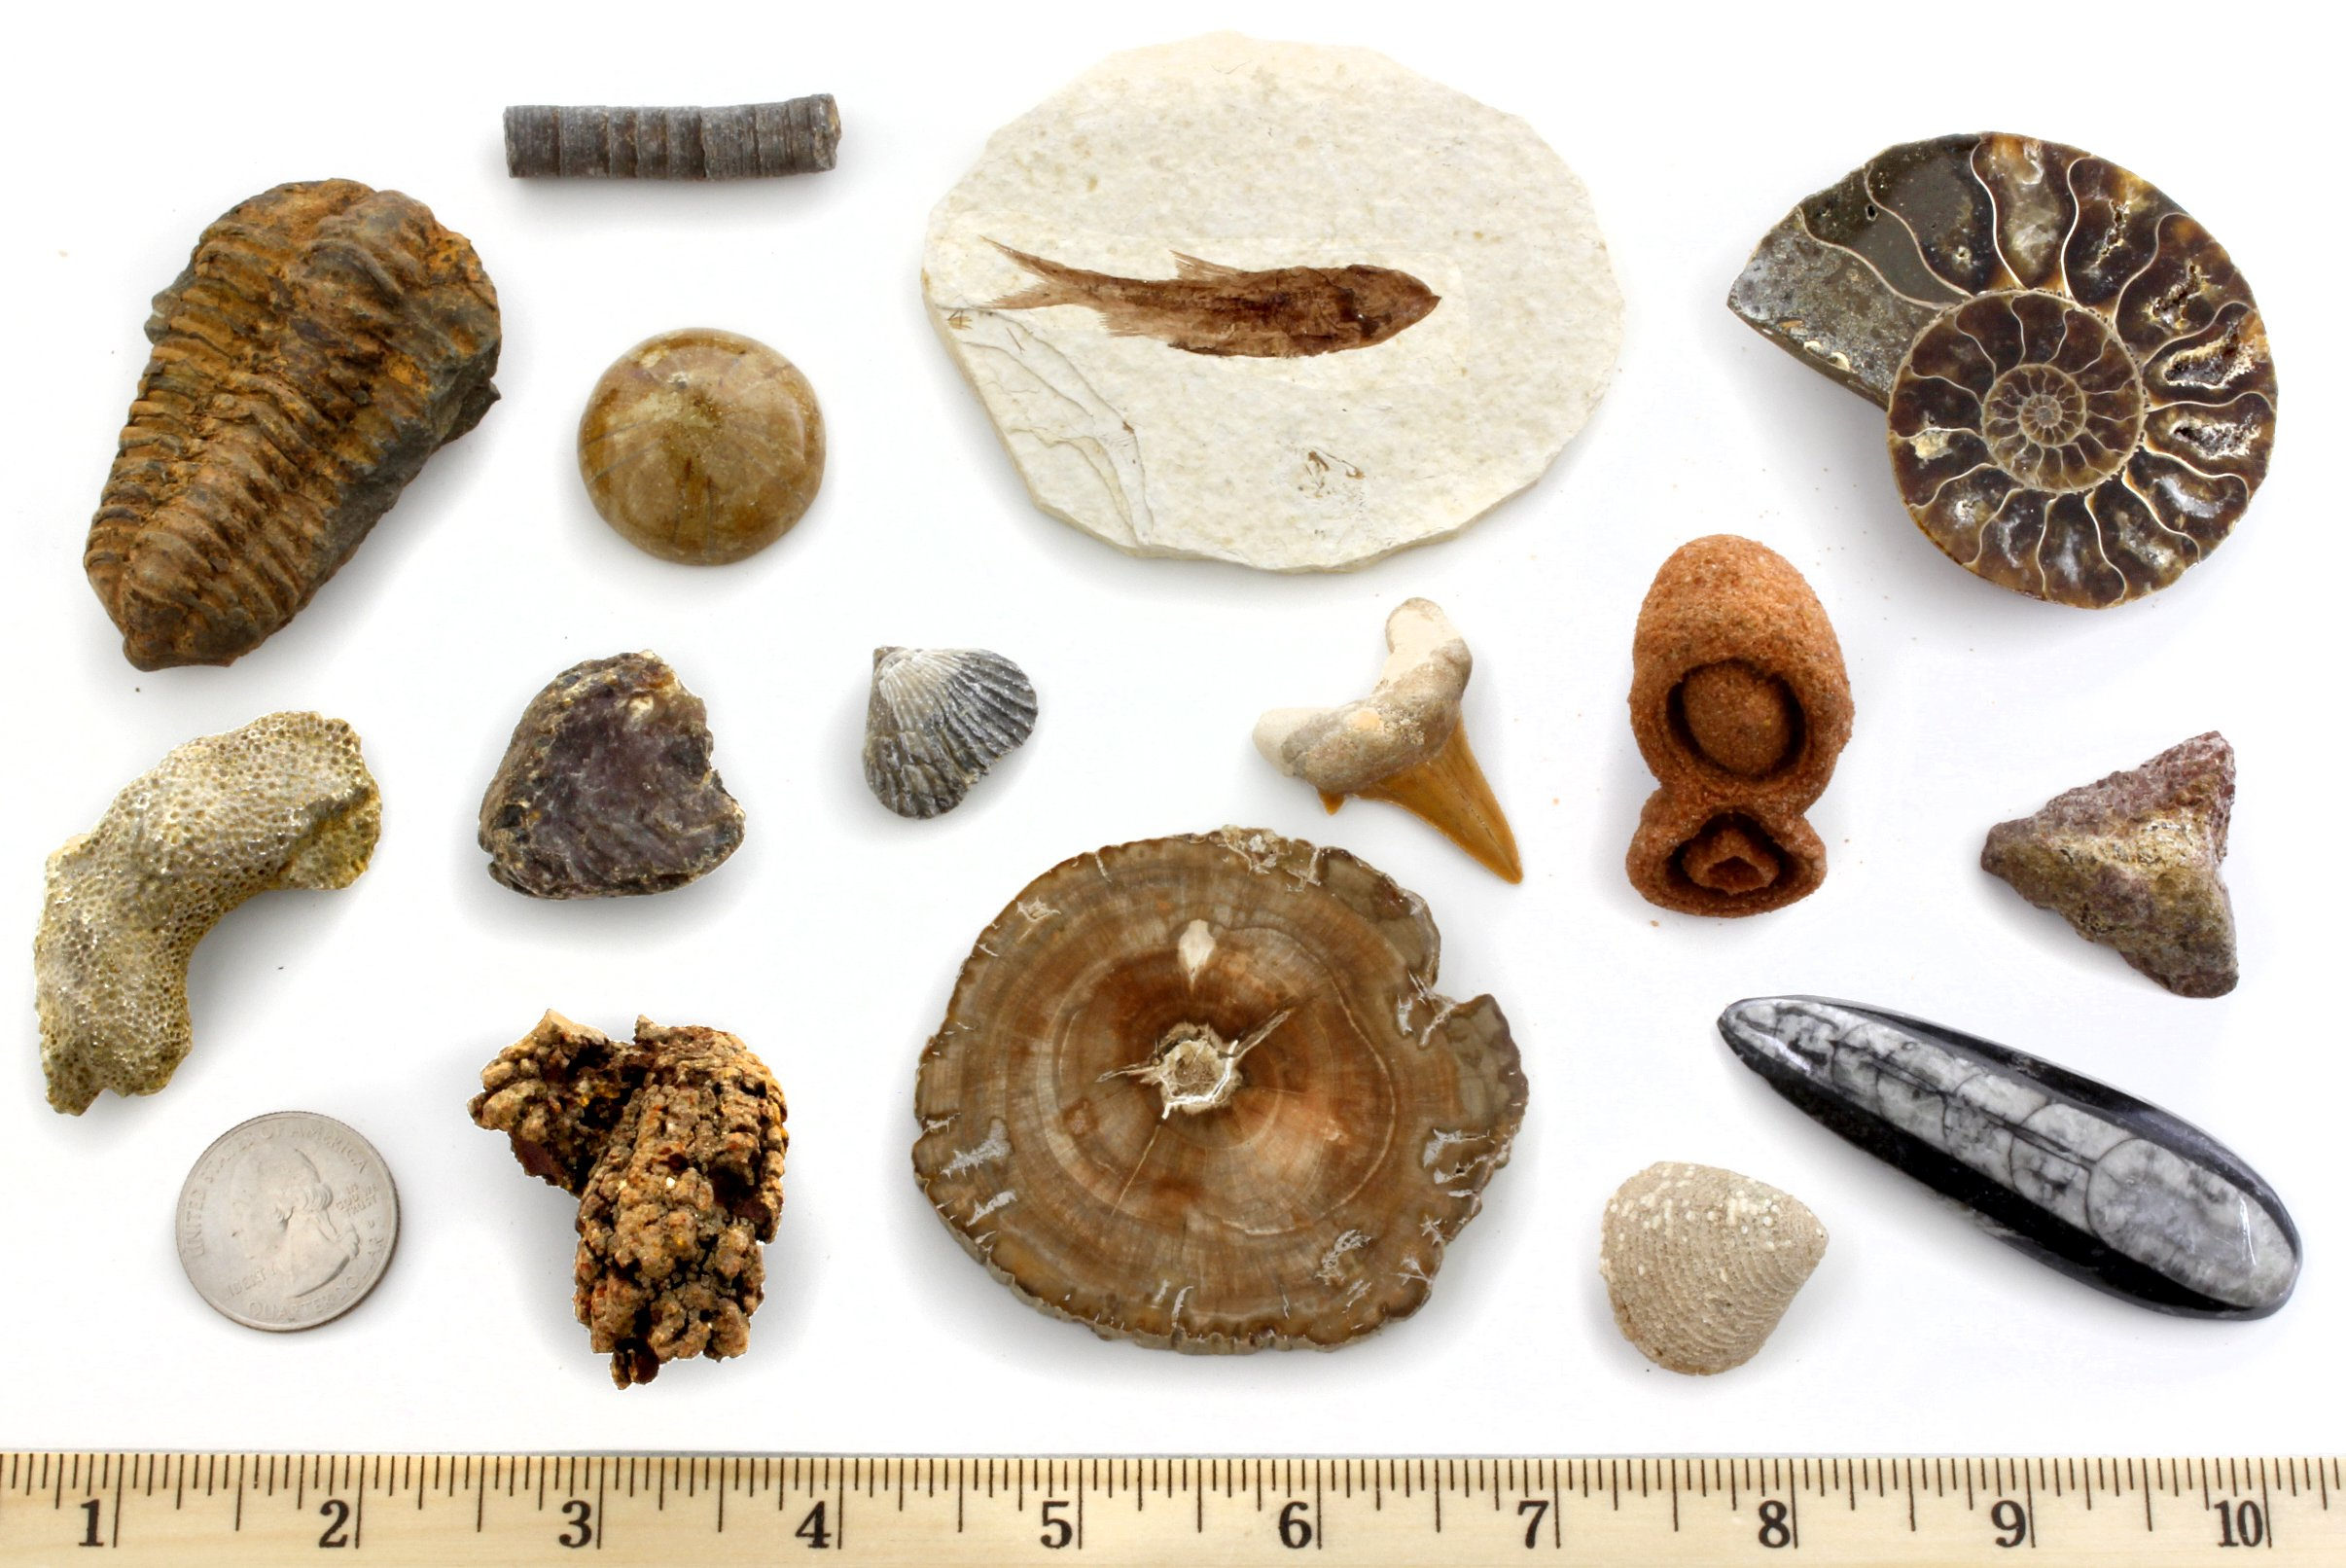 Dancing Bear Fossil Collection Set, 15 Real Specimens: Trilobite, Ammonite, Fish Fossil, Shark Tooth, Petrified Wood, Dinosaur Bone, Fossil Book, Time Scale, ID Cards, Magnifying Glass, Science Kit